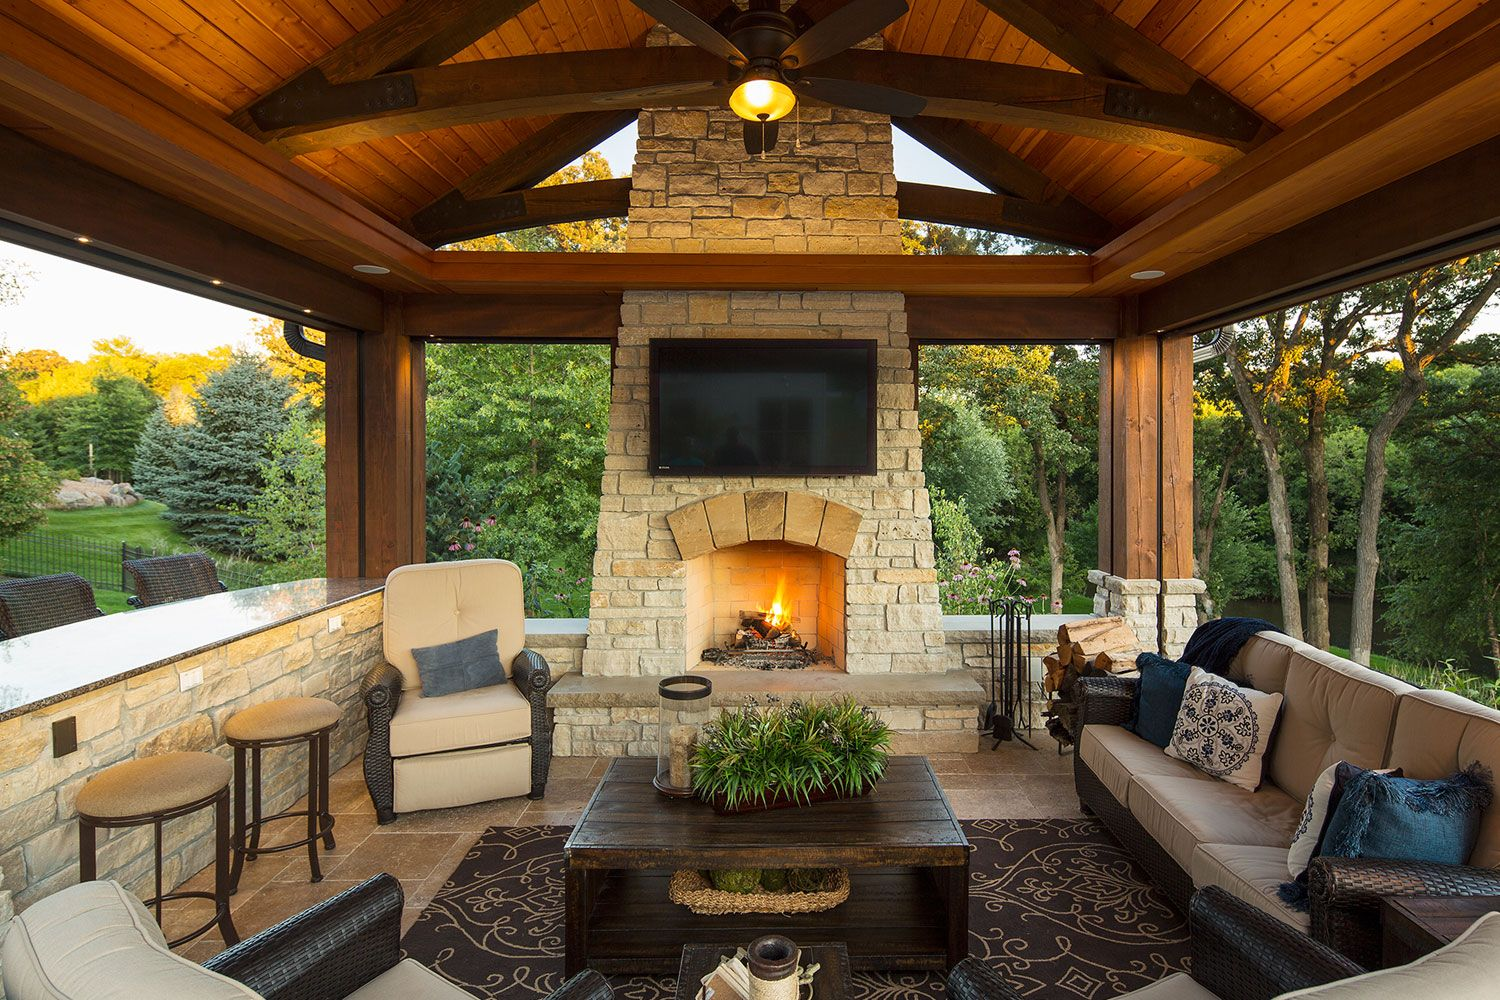 Outdoor Living Room with Stone Fireplace and Travertine ... on Ab And Outdoor Living id=51117